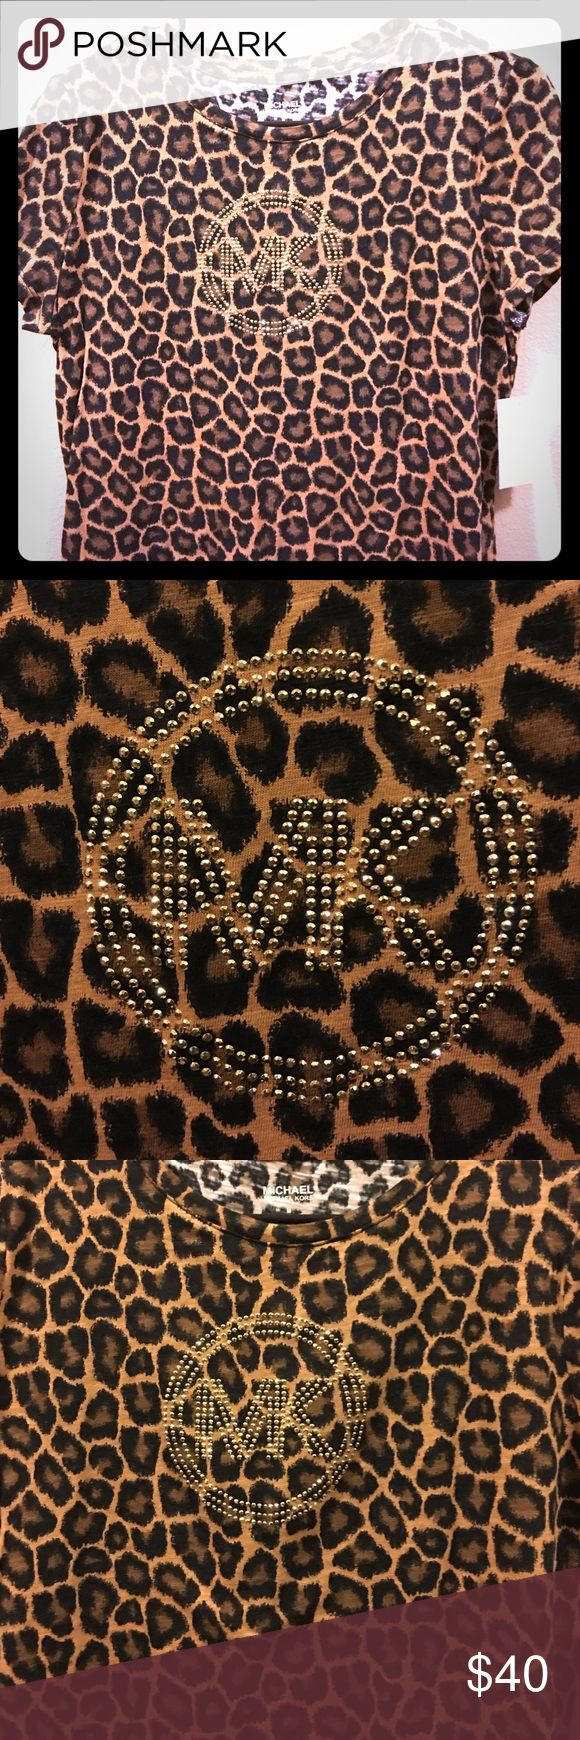 NWT! Michael Kors cheetah print shirt! New with tags! Michael Kors with cheetah print and gold! Michael Kors Tops Blouses